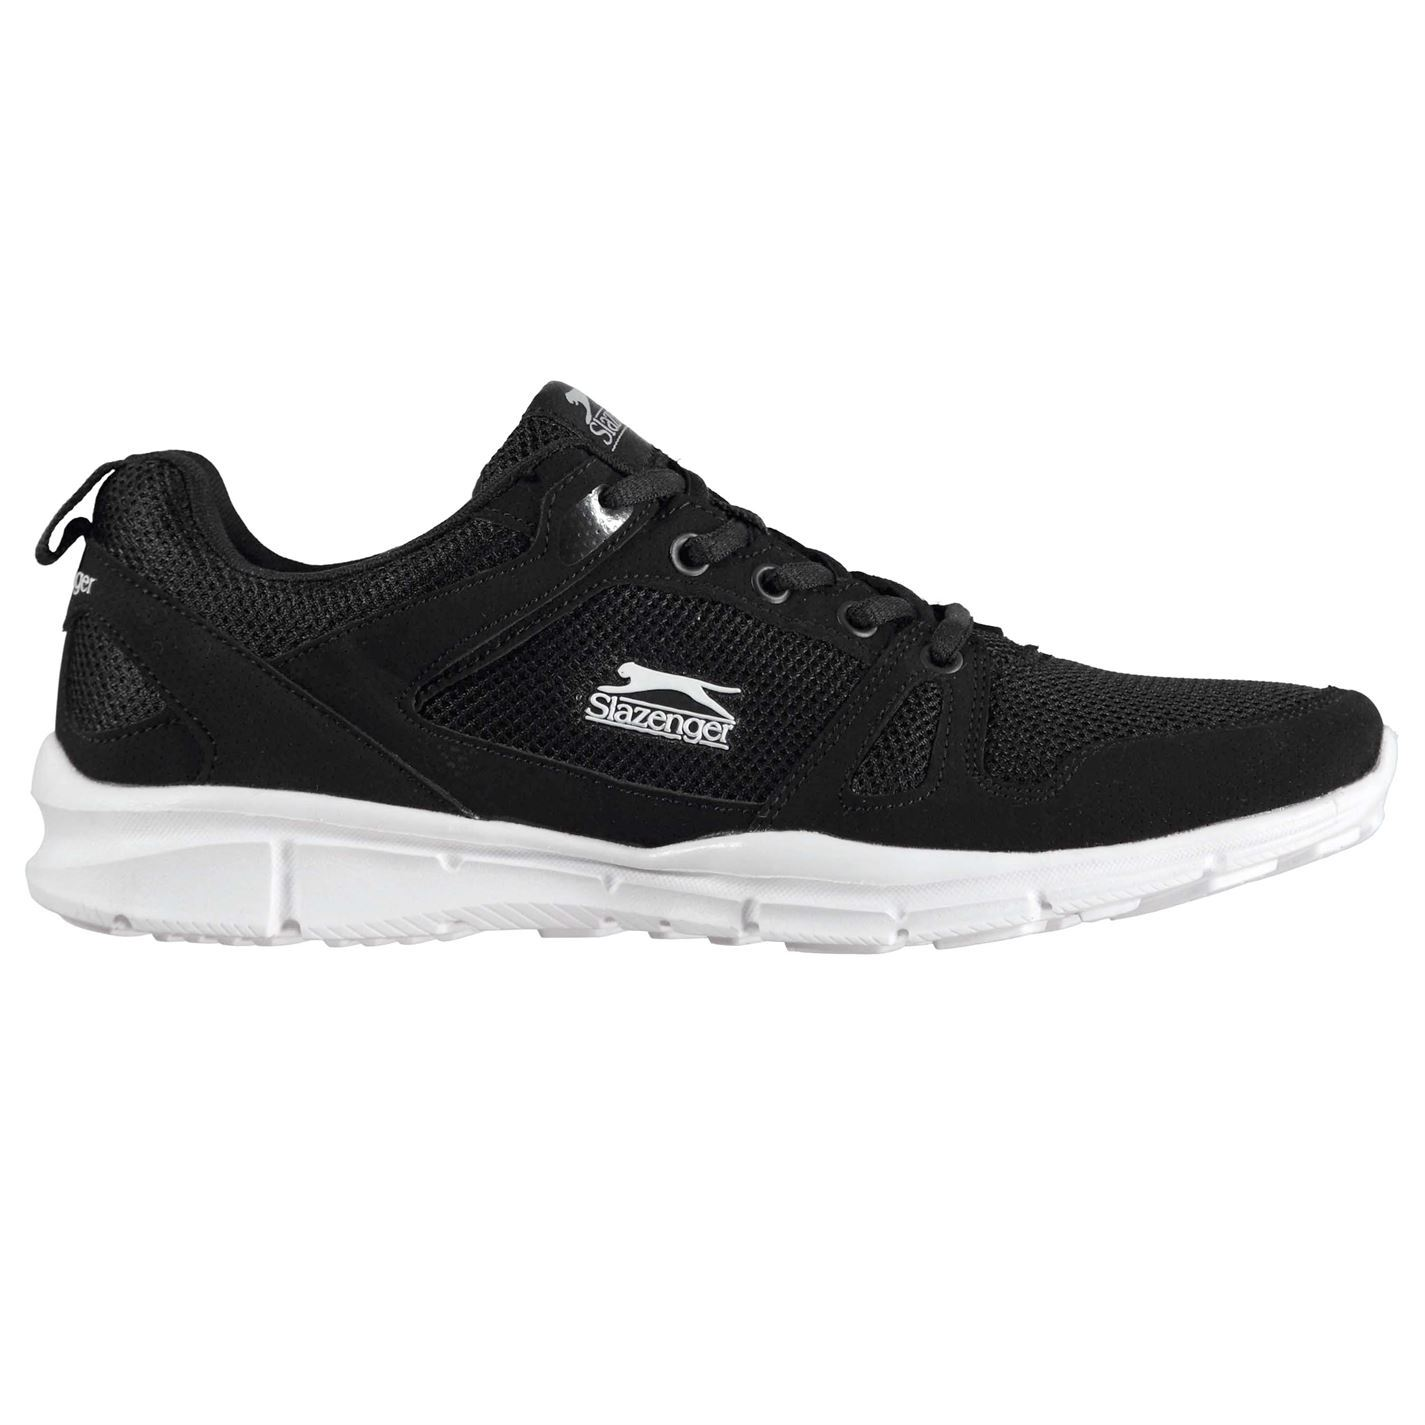 Slazenger Mens Force Mesh Running Shoes Lace Up Memory Lightweight Breathable